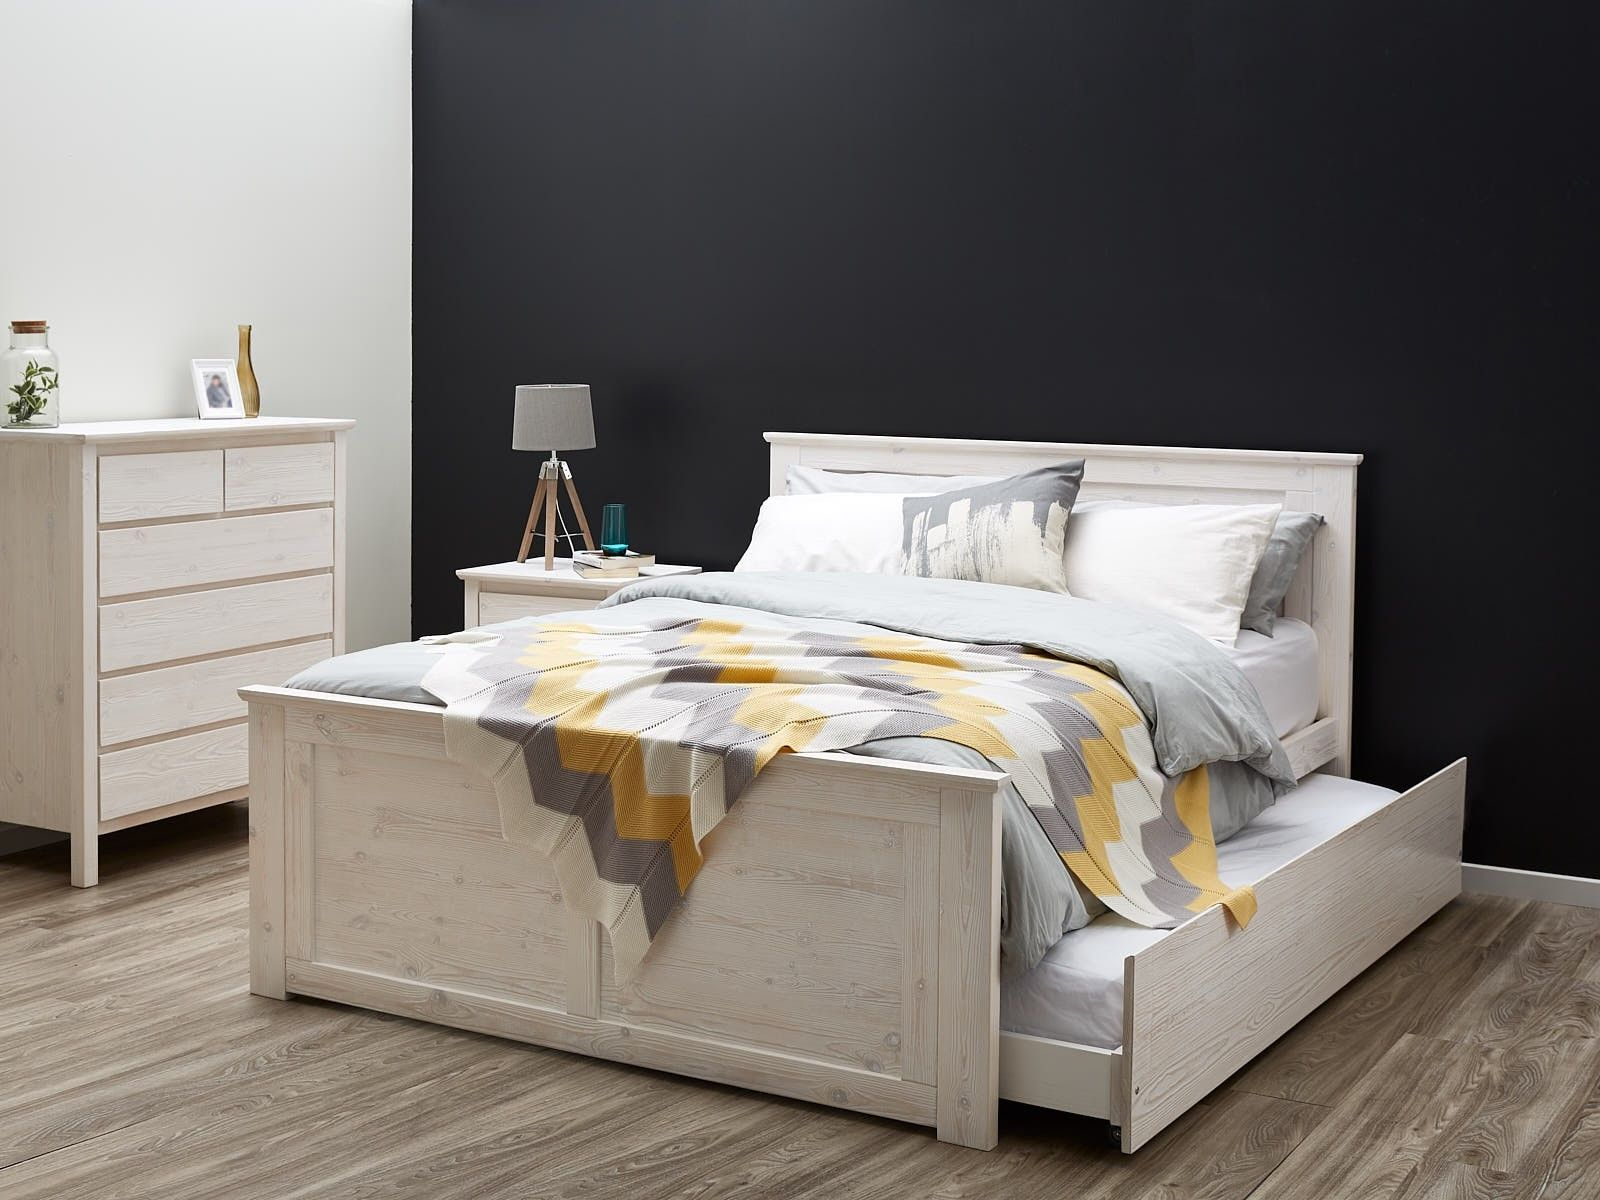 Best Double Bed Trundle Whitewash Modern B2C Furniture 400 x 300